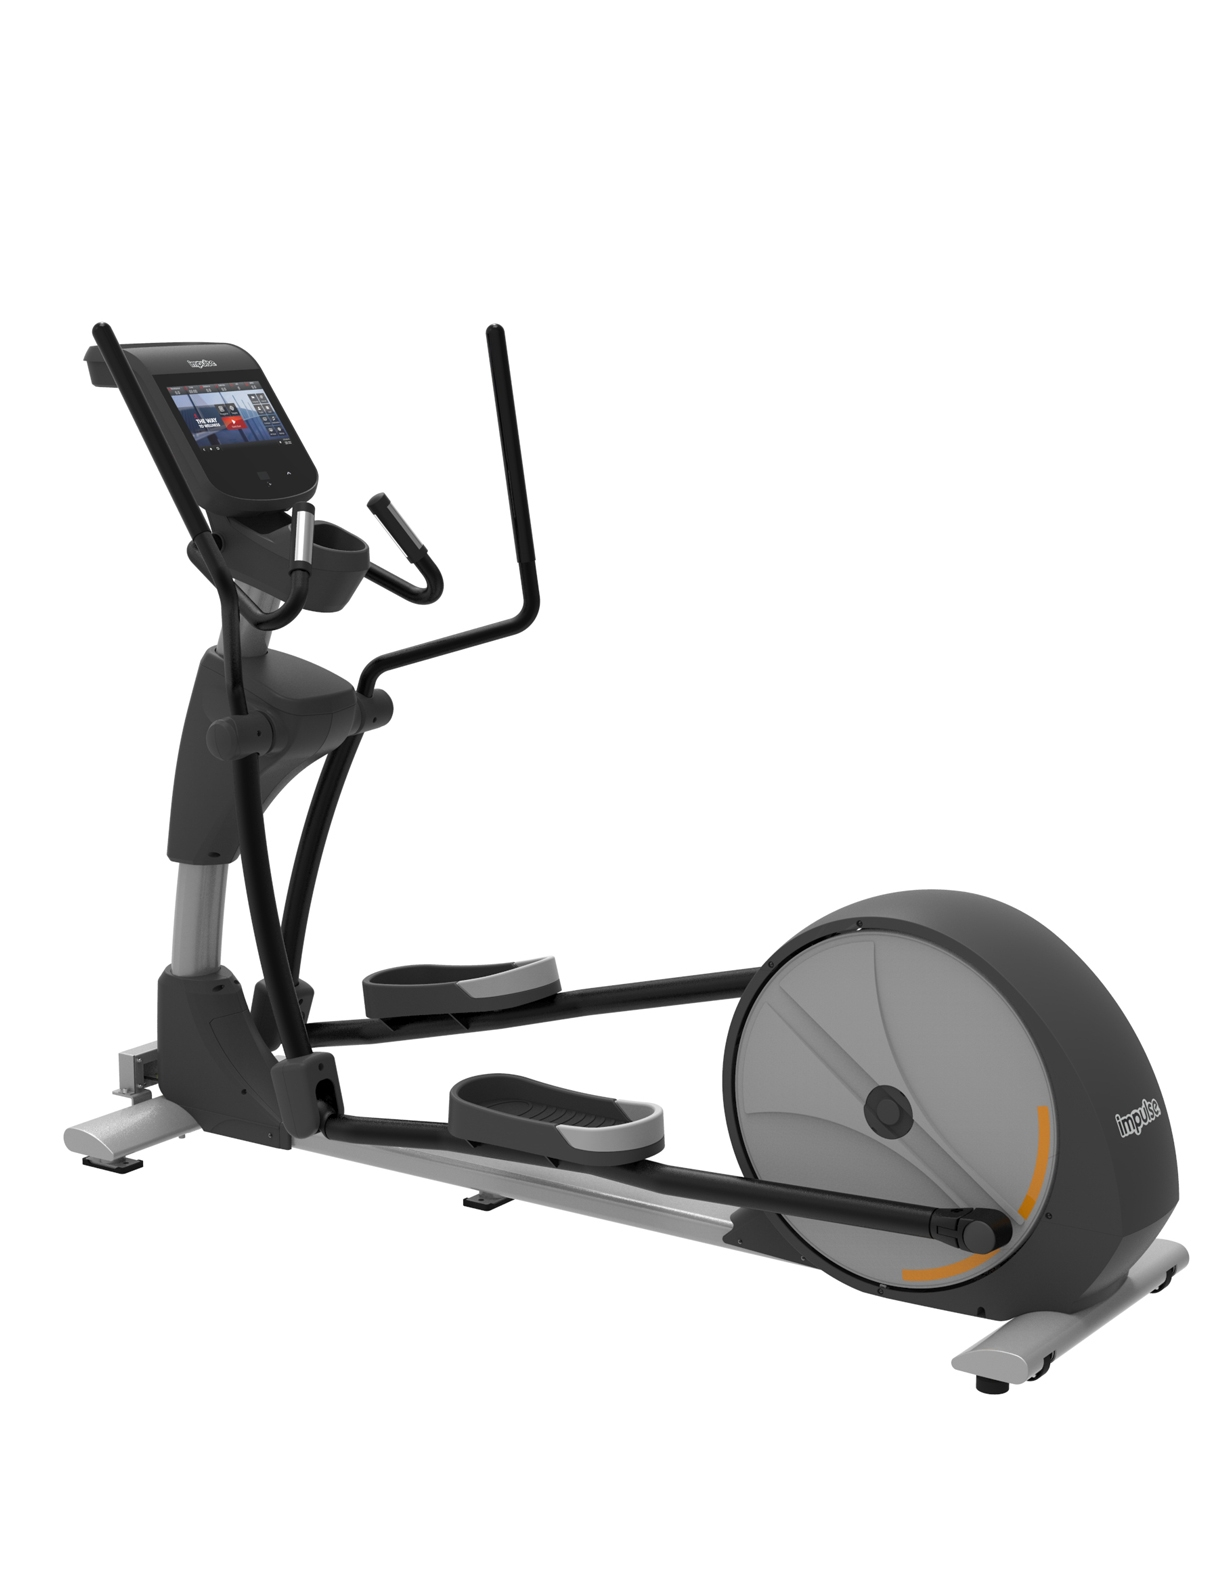 RE500 ELLIPTICAL